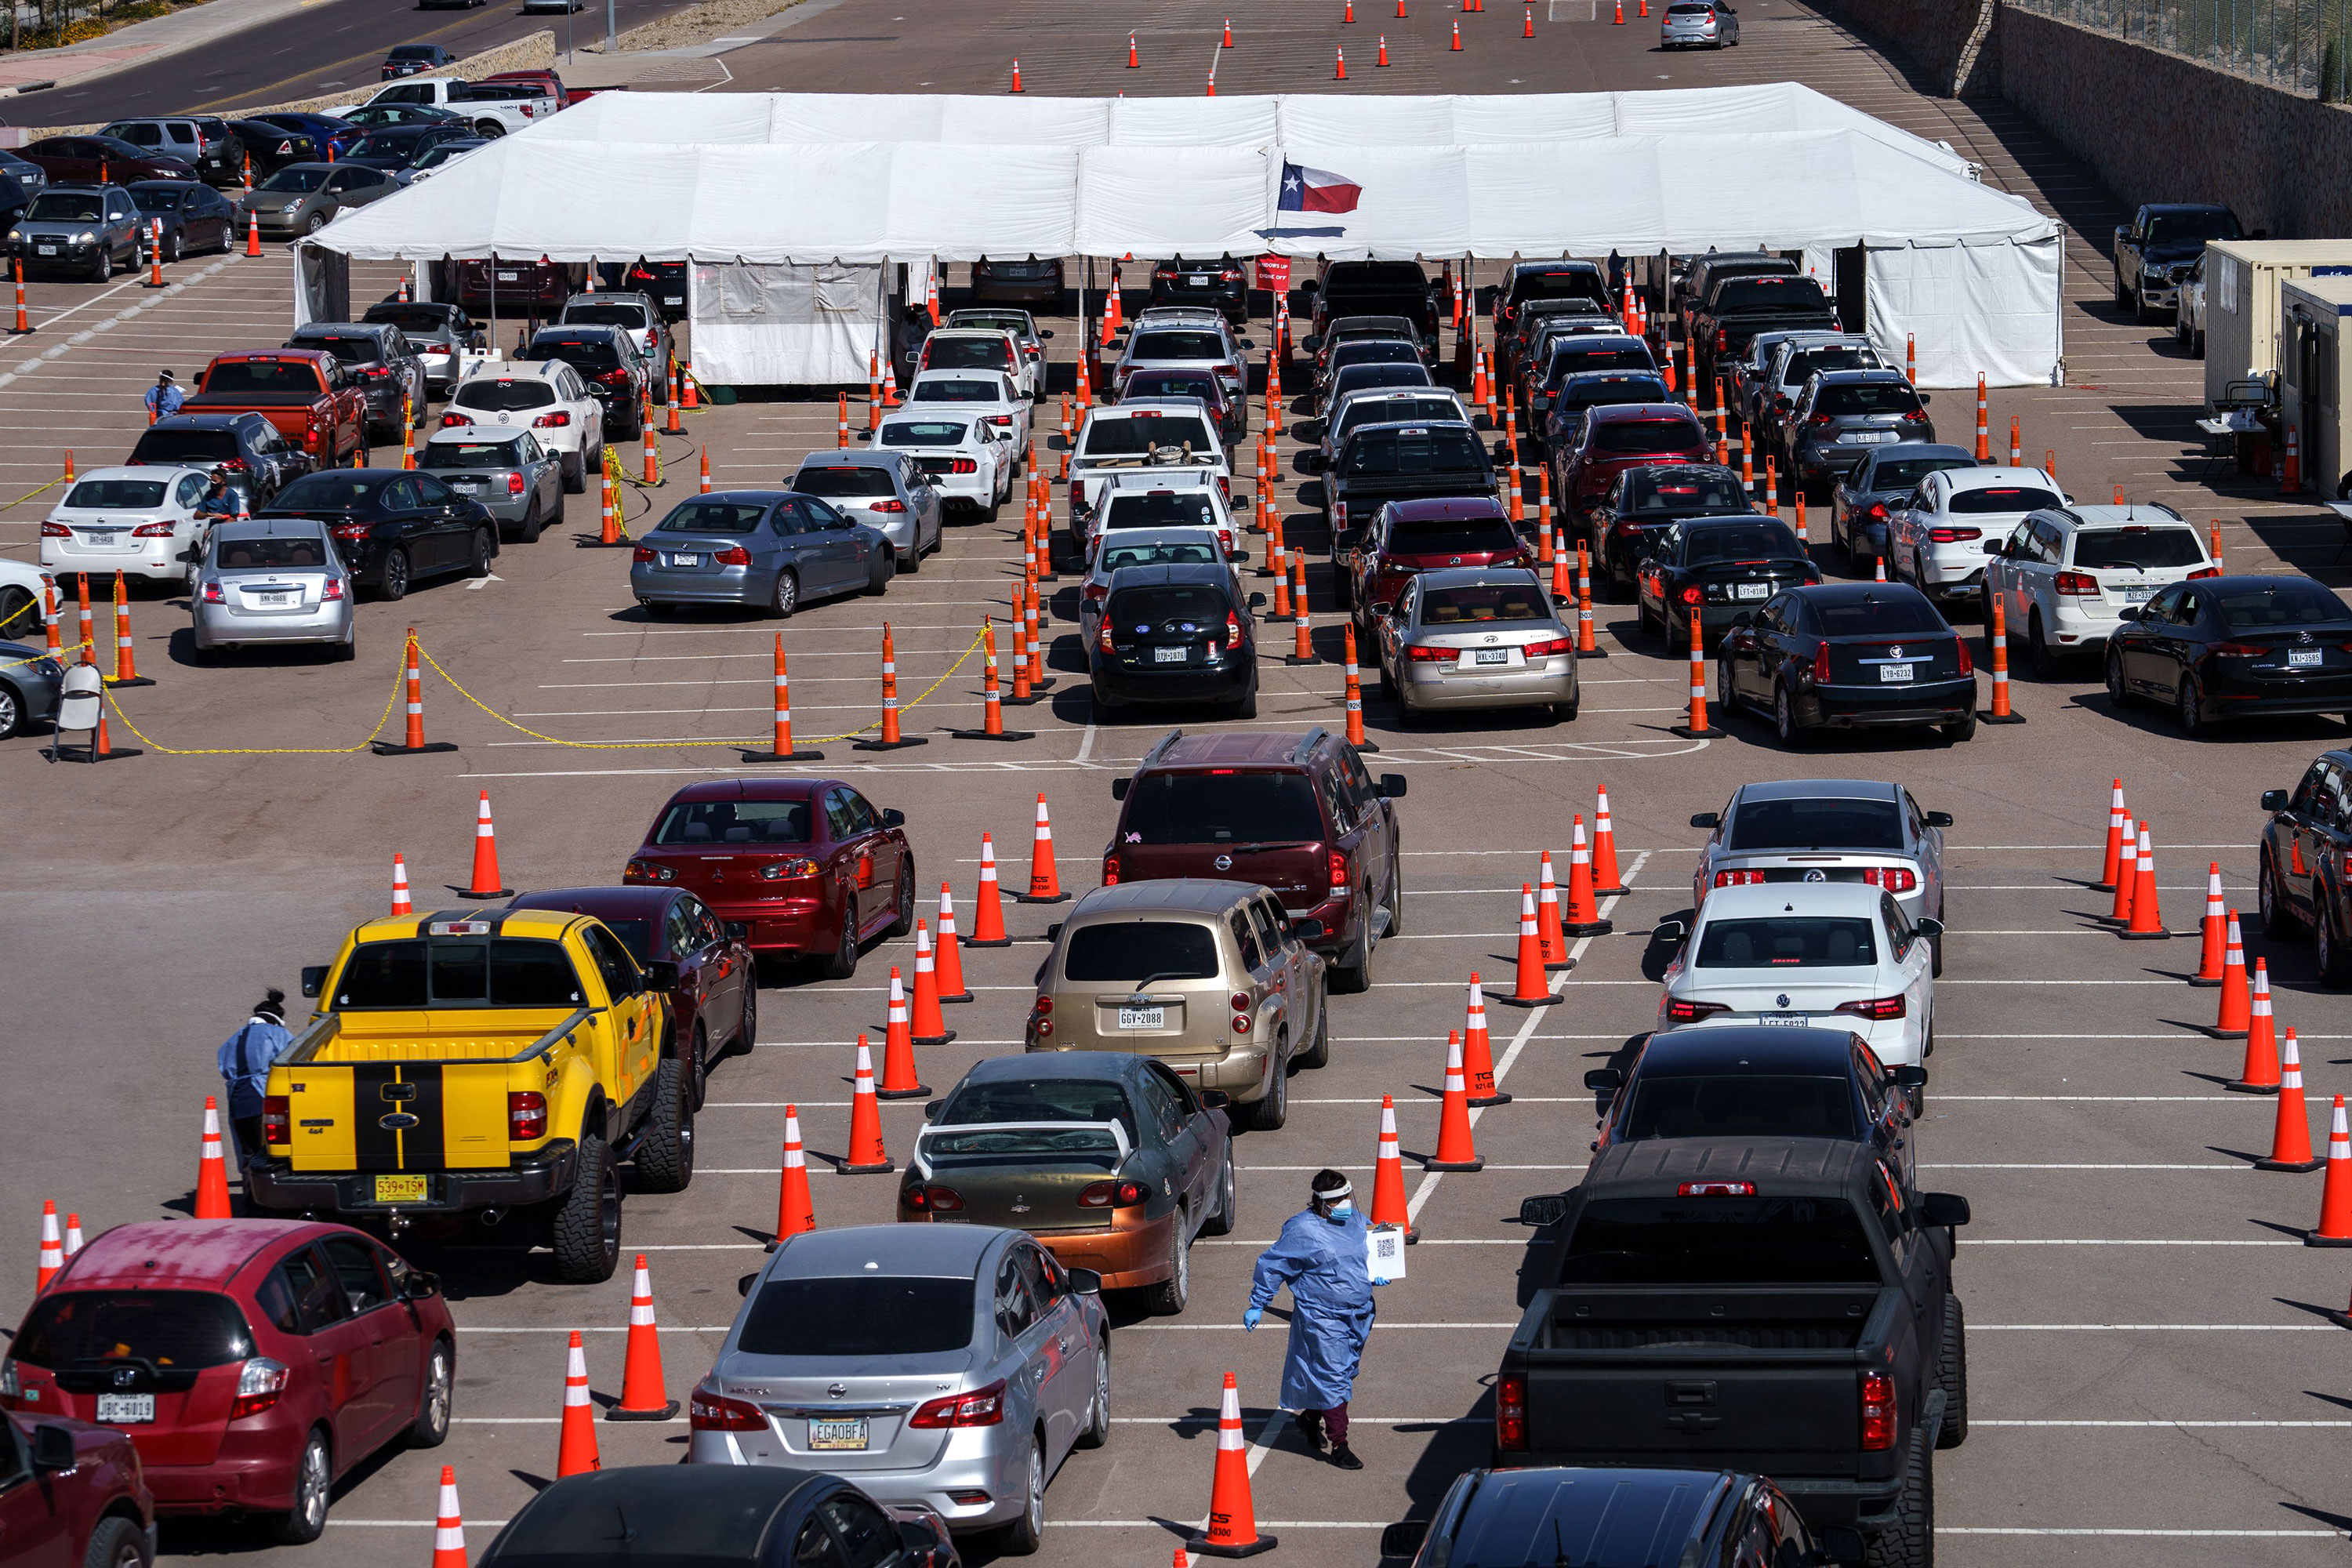 Motorists line up for Covid-19 tests at the University of Texas El Paso on October 23.